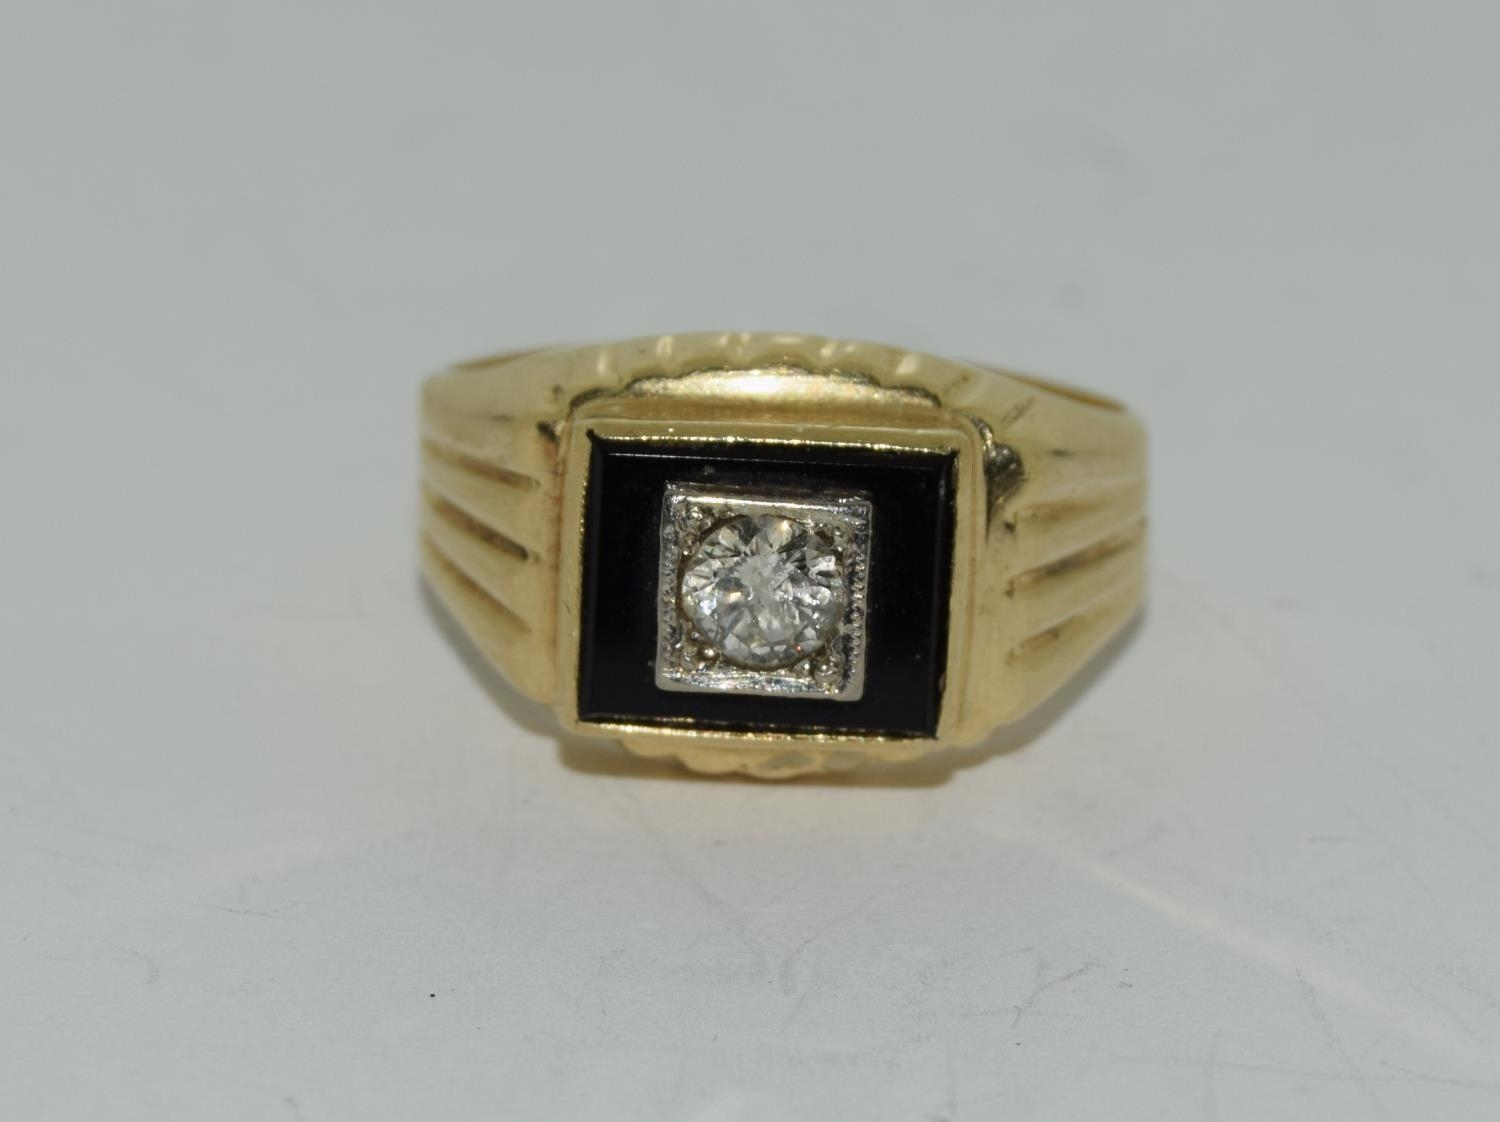 14ct gold gents onyx set with diamond approx 0.33ct signet ring size S - Image 6 of 6